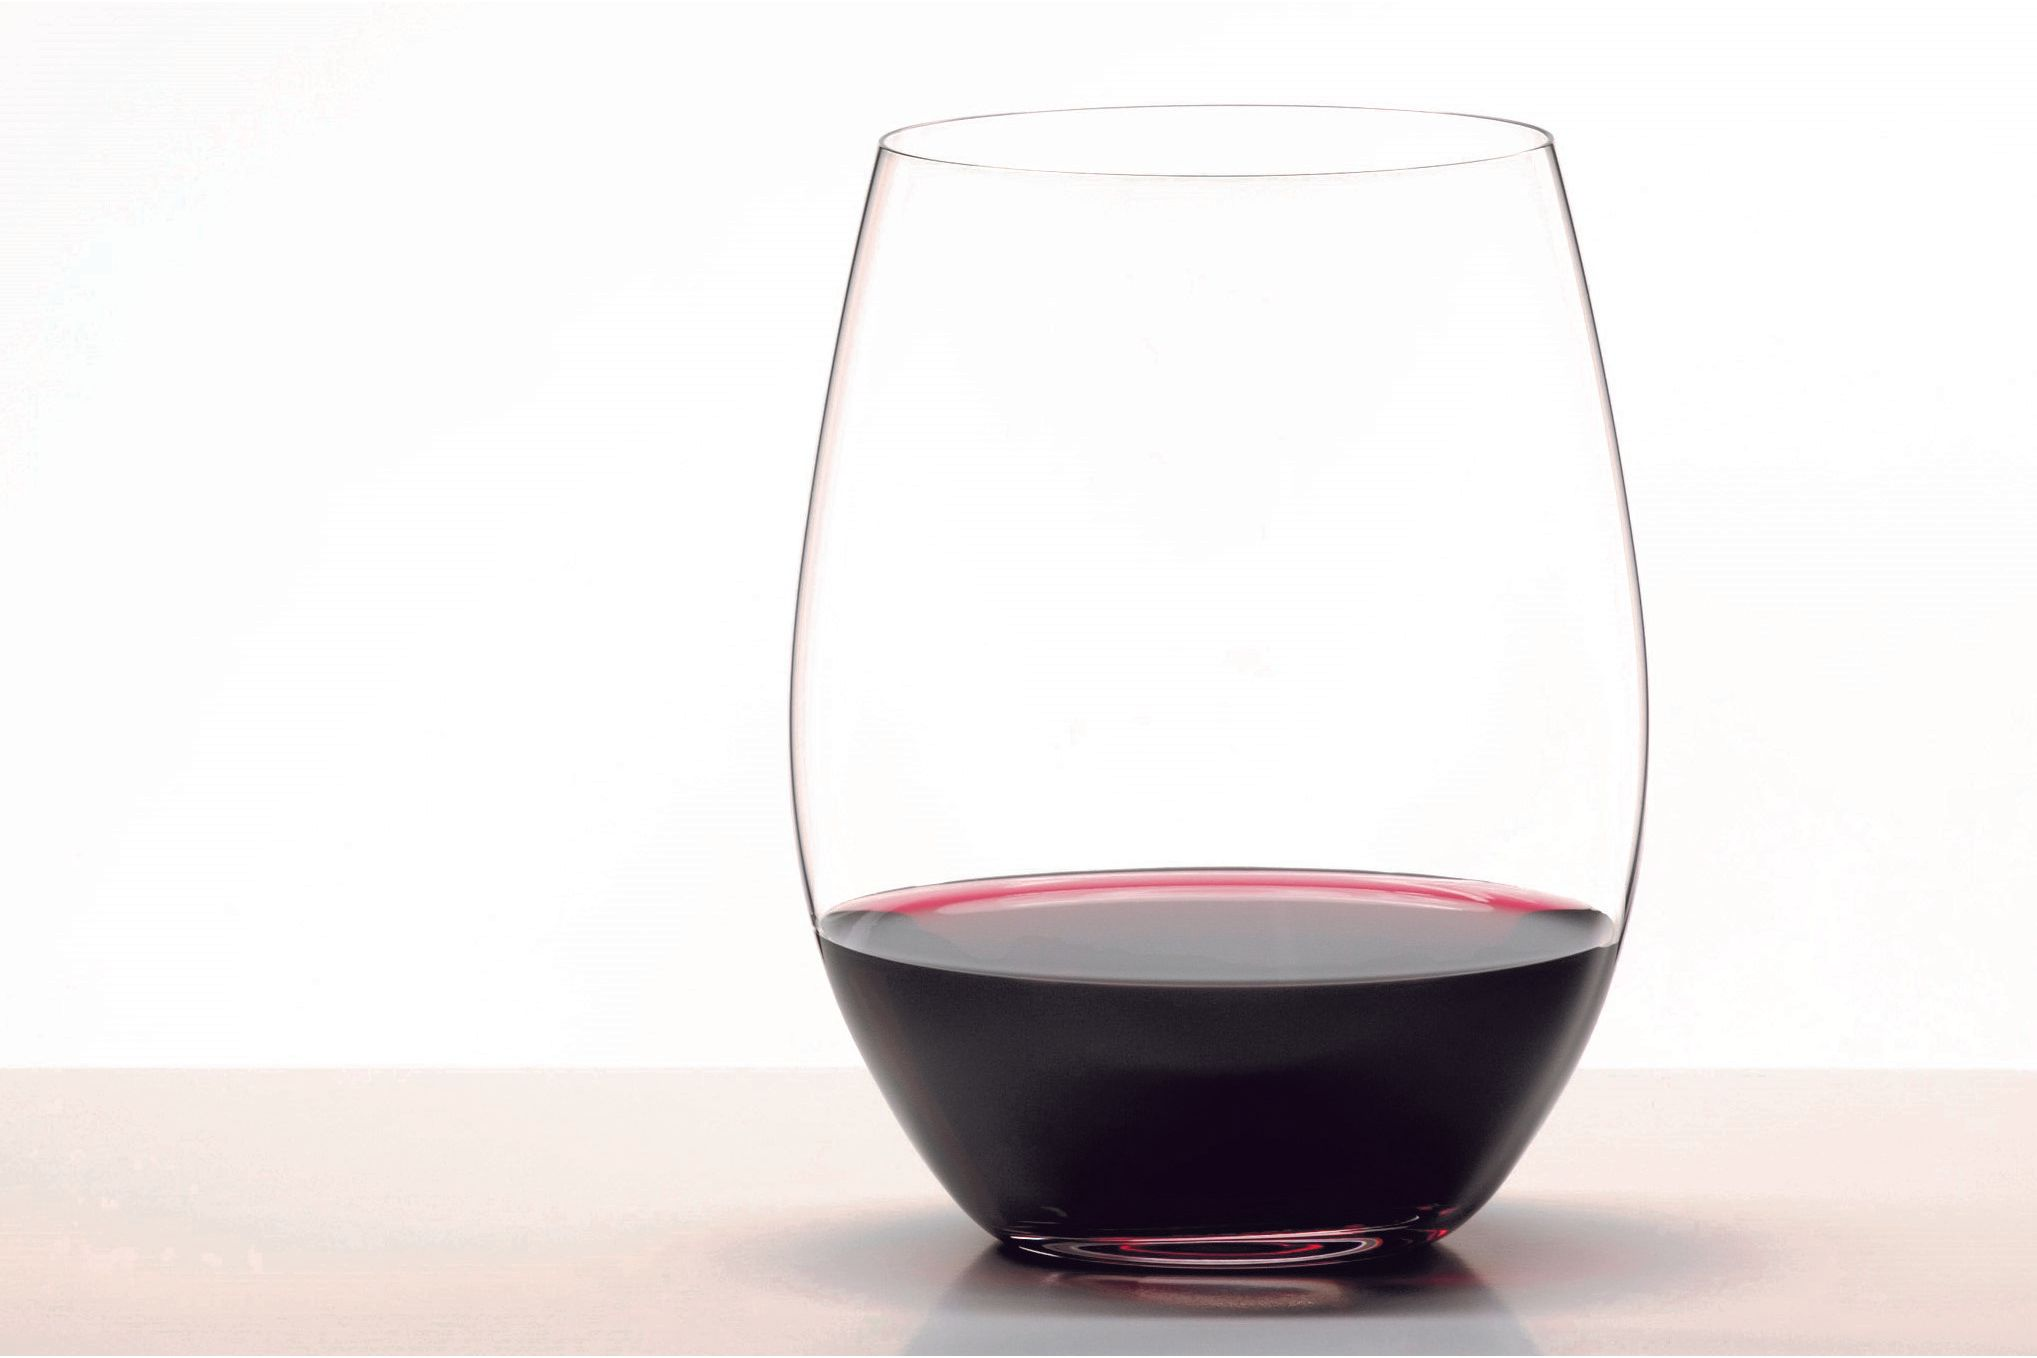 Riedel Riedel O Pair of Red Wine Glasses Cabernet/Merlot 600ml thumb 3